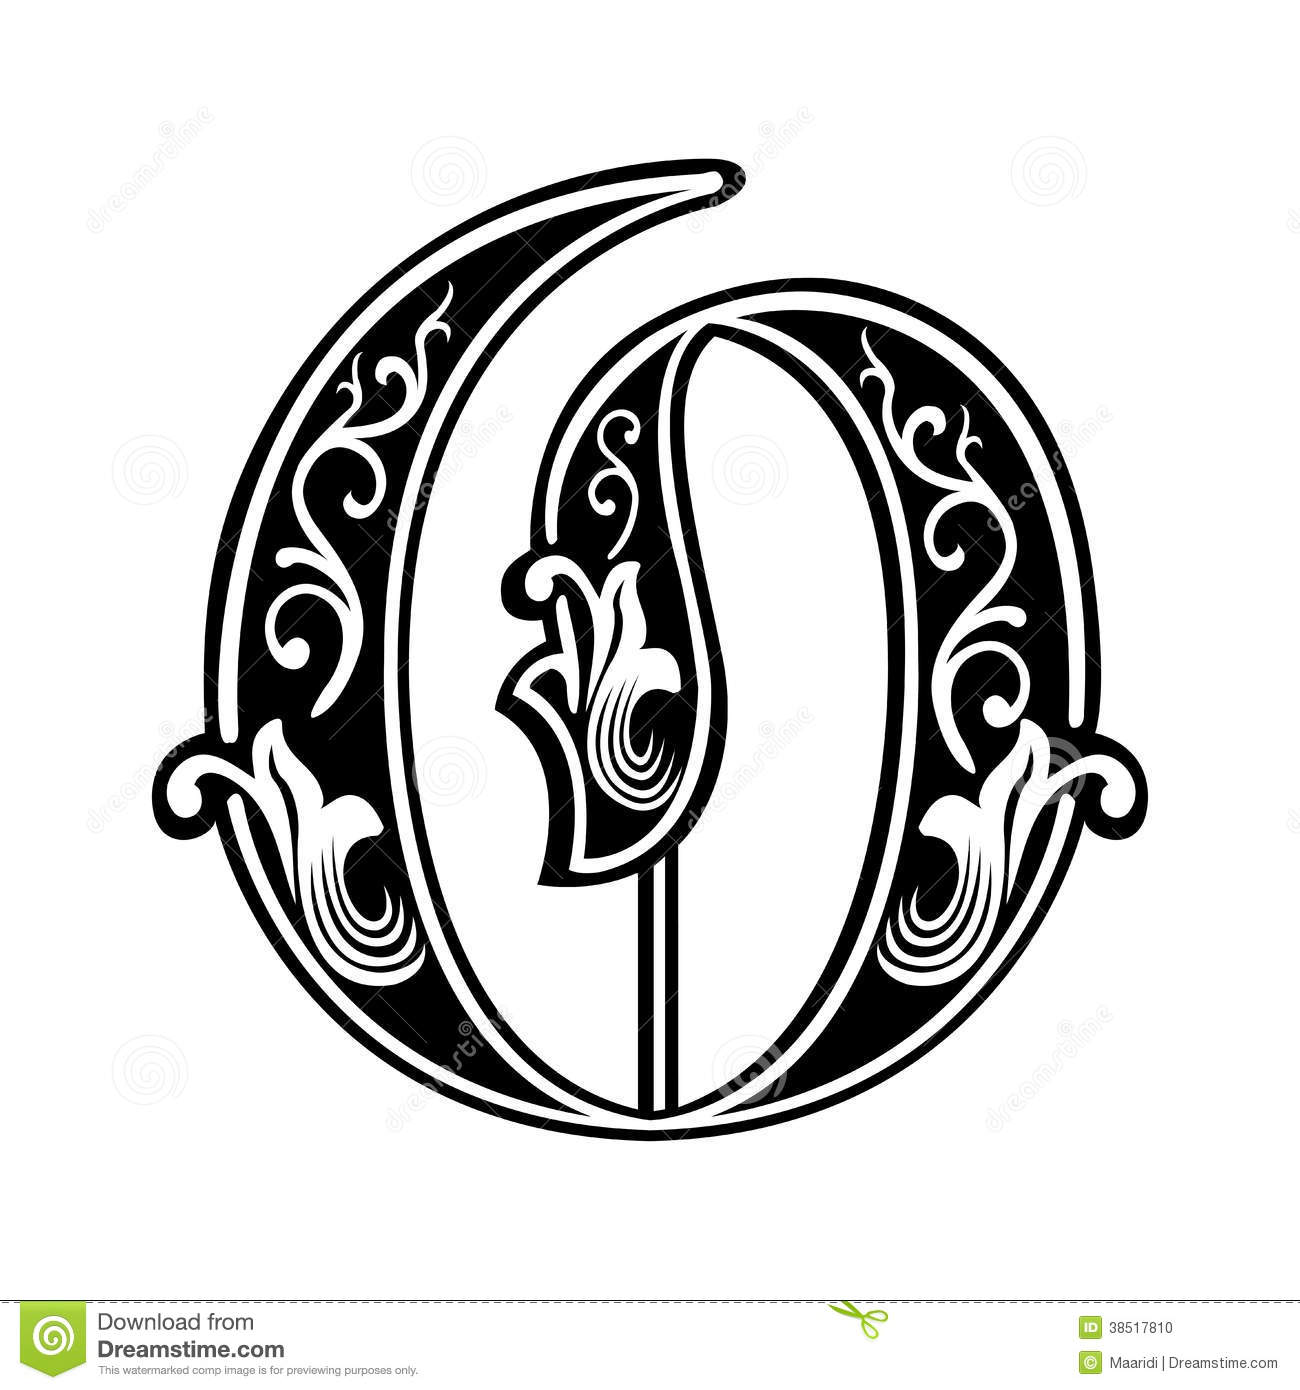 Download Garnished Gothic Style Font Letter O Stock Vector